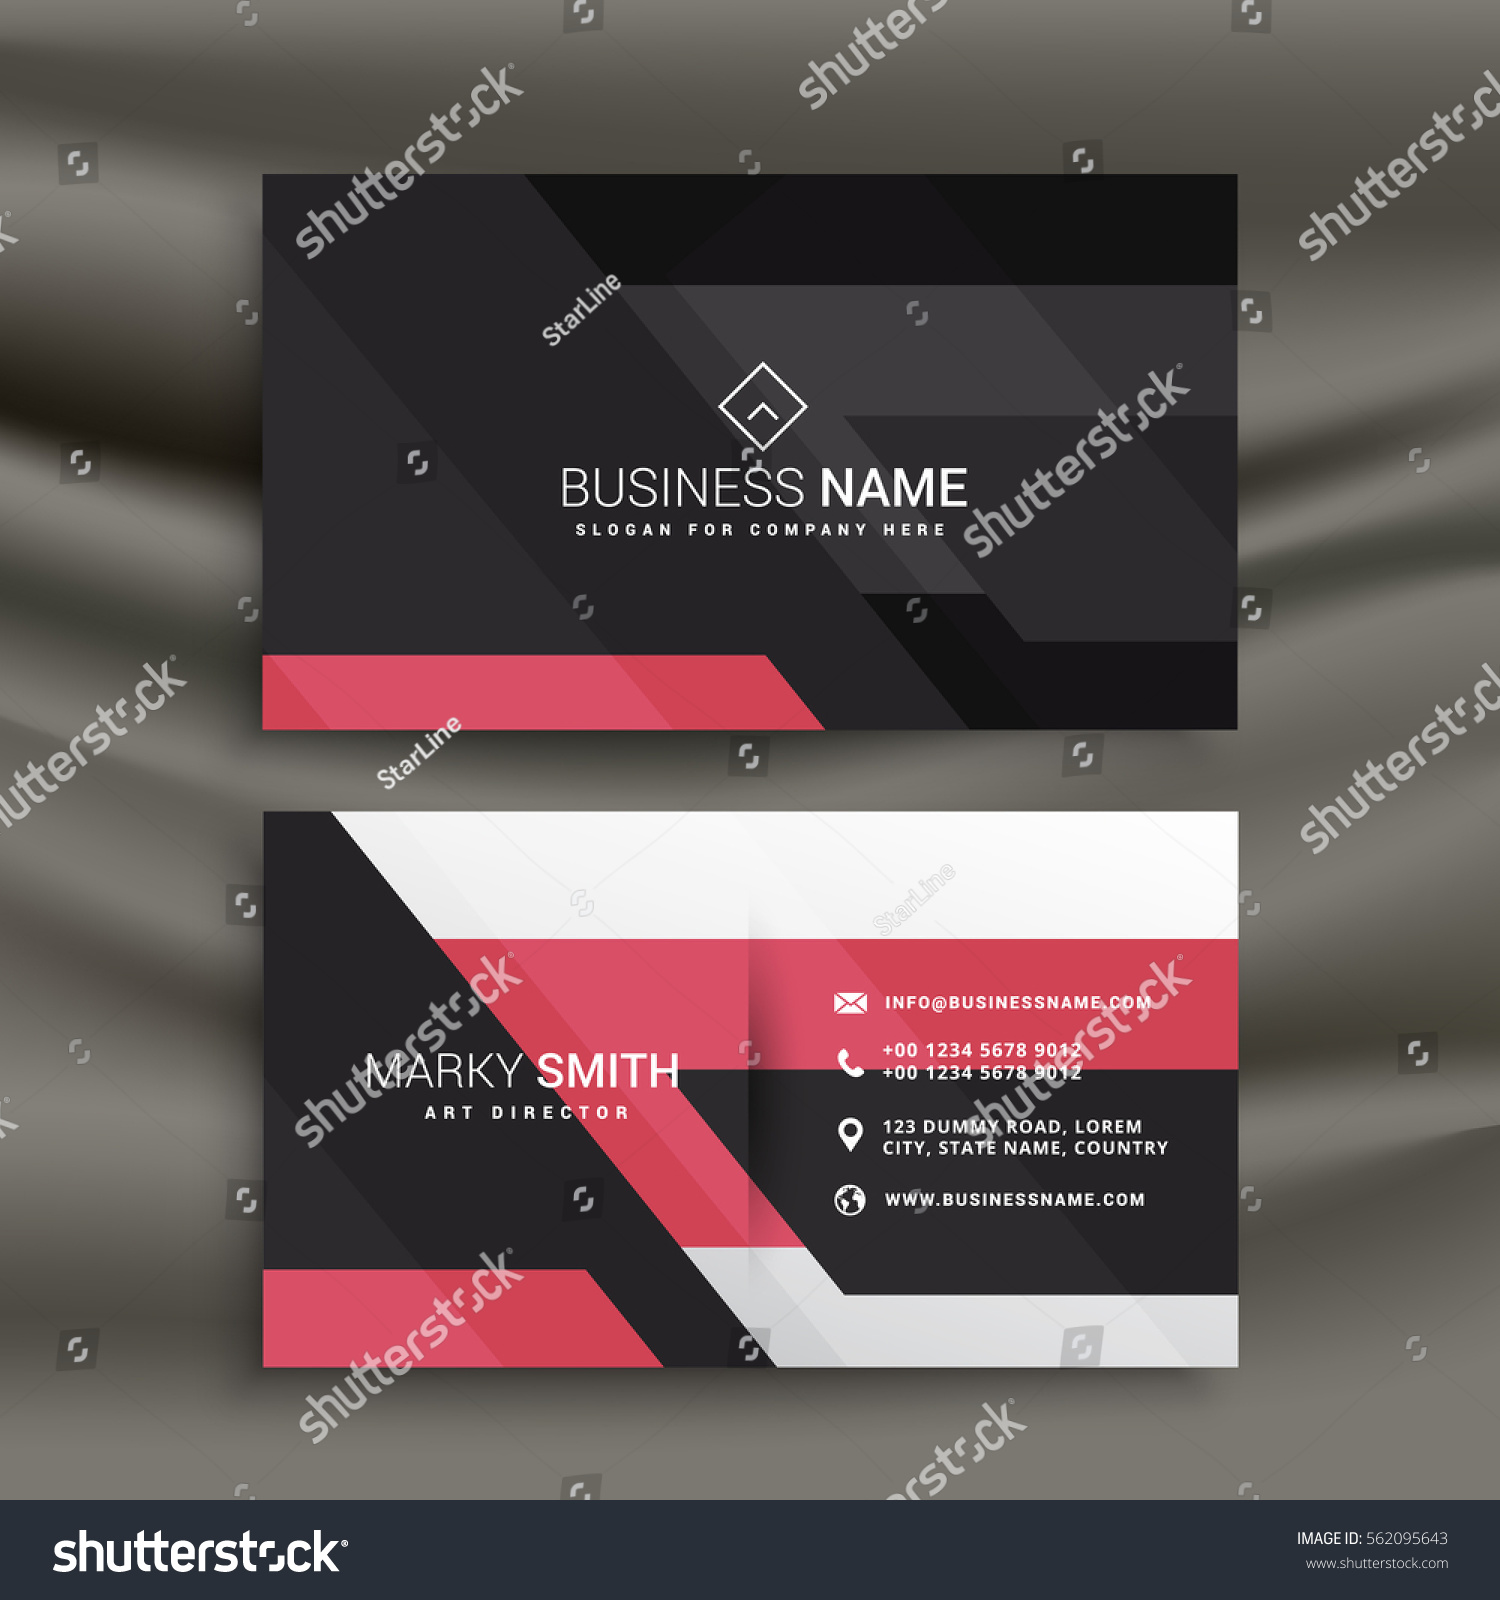 Abstract Pink Black Business Card Design Stock Vector HD (Royalty ...